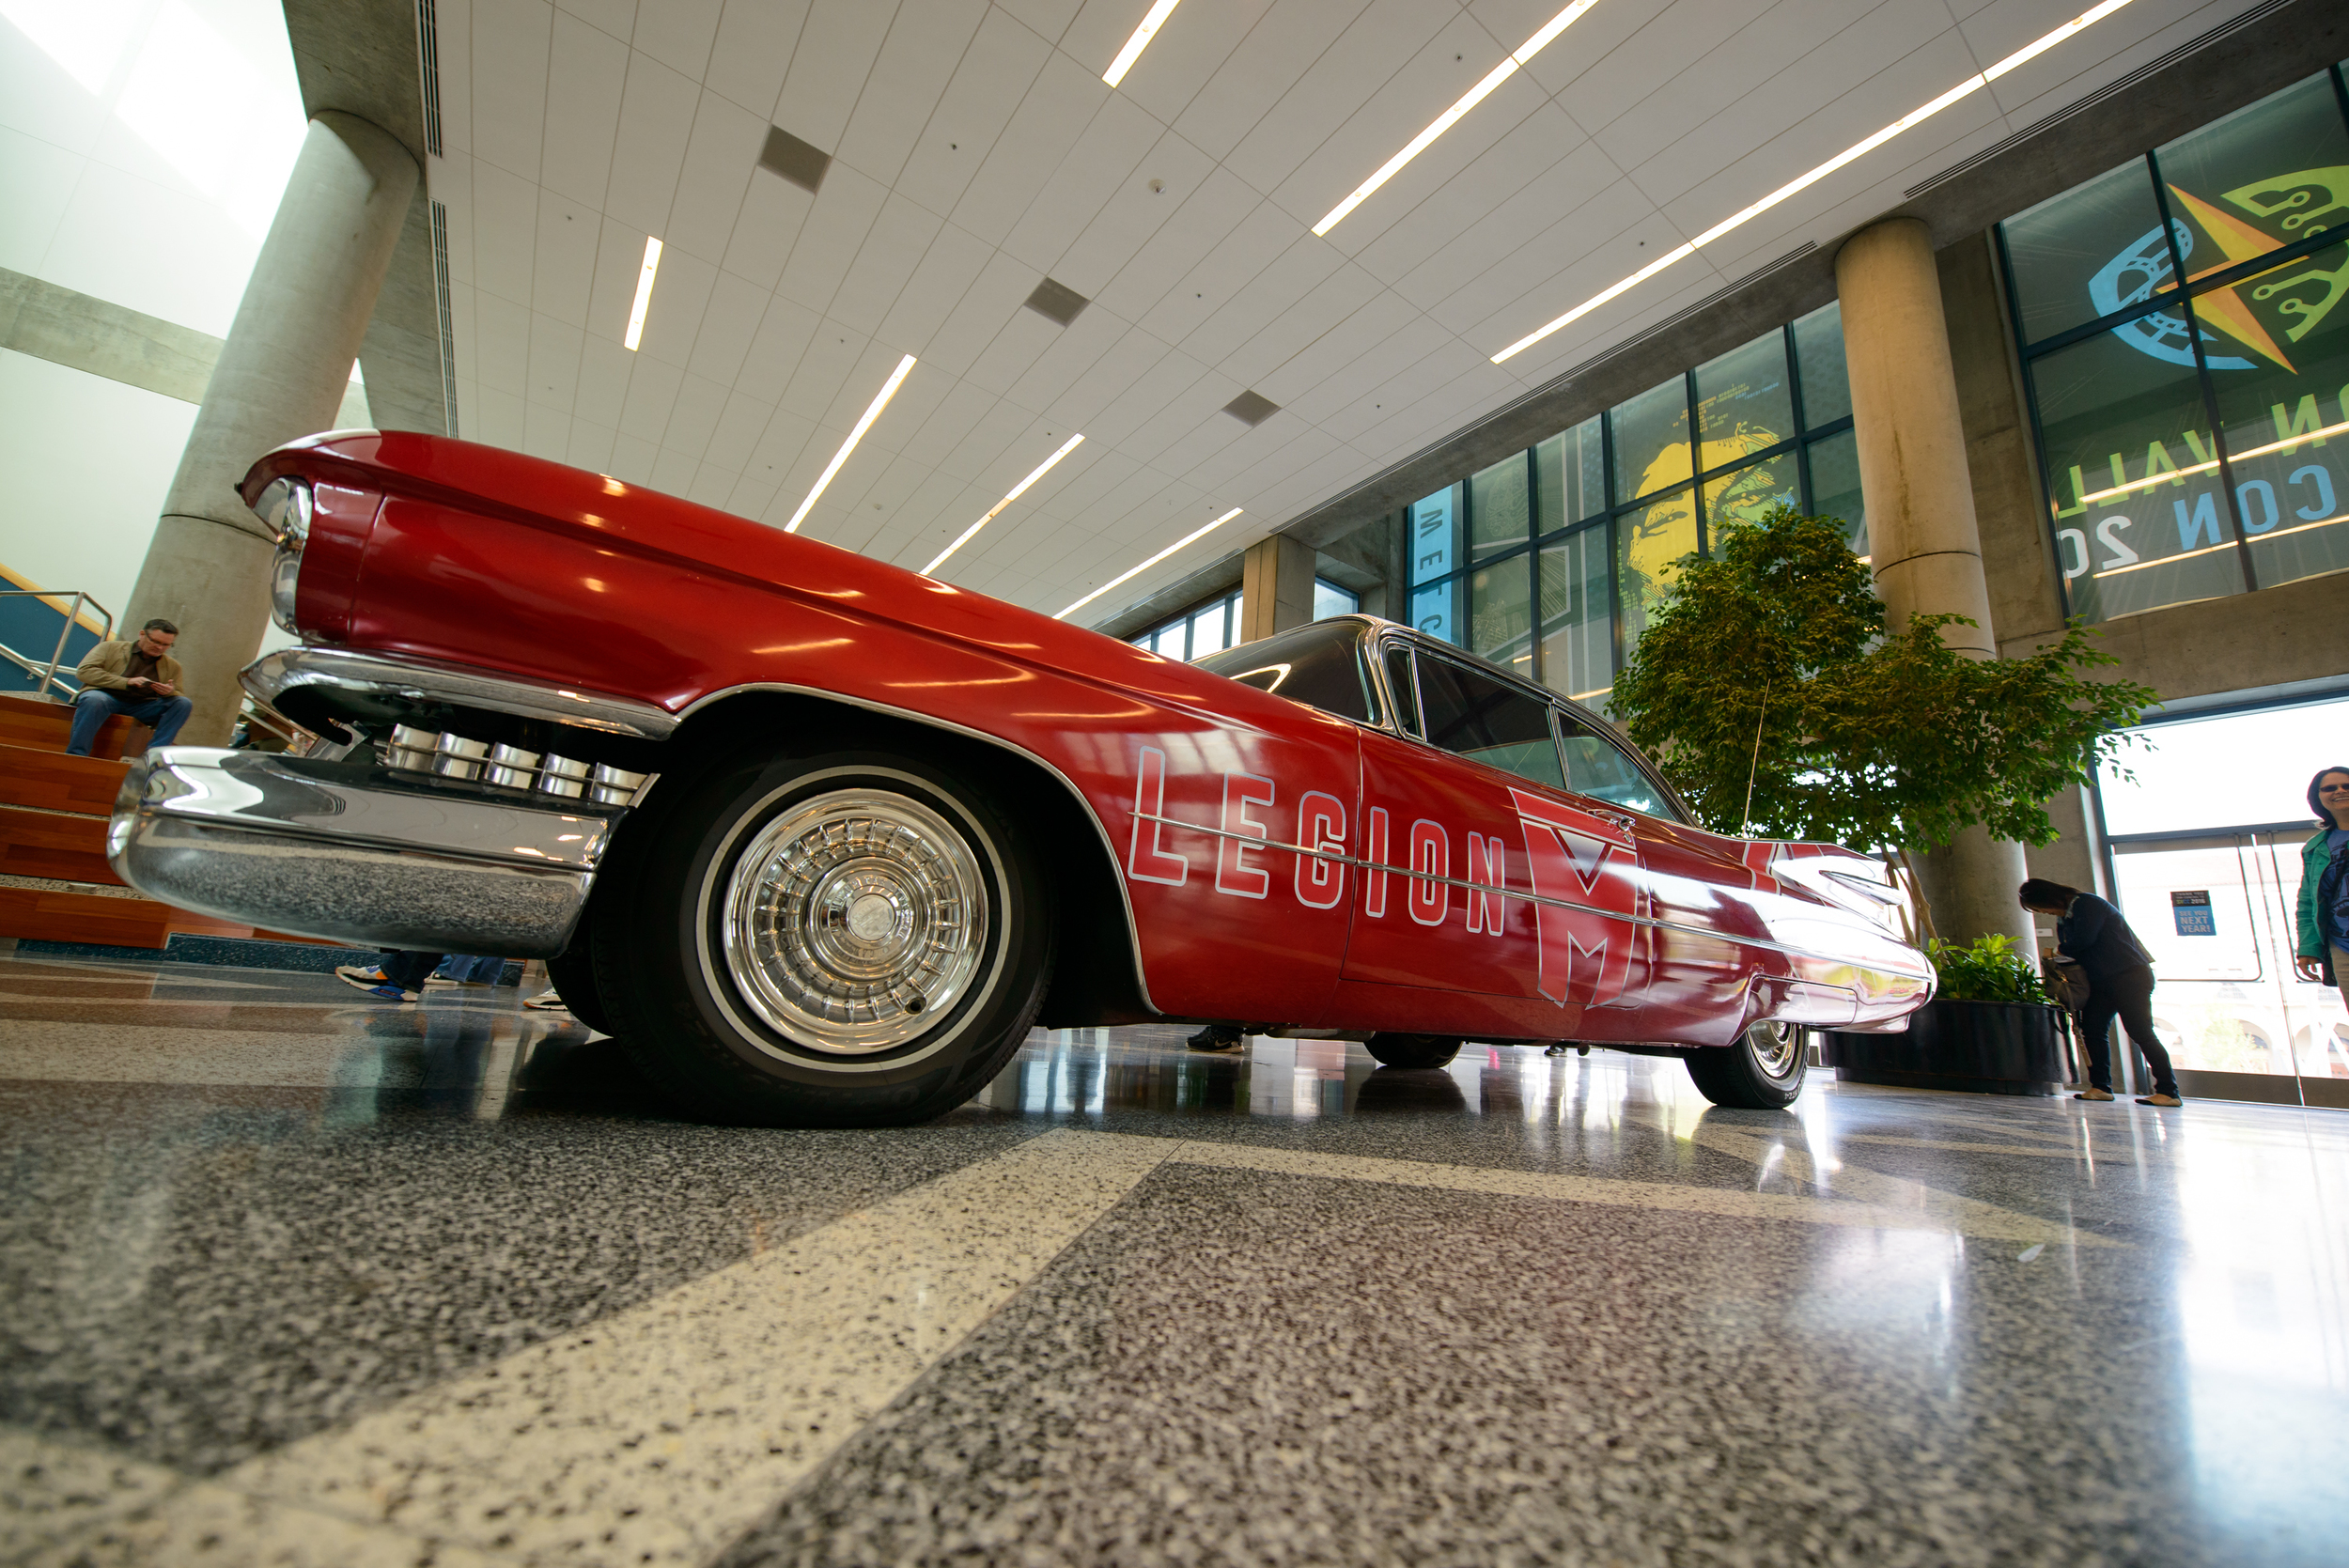 Marilyn is a '59 Cadillac. Just like her namesake (Marilyn Monroe), she looks absolutely stunning in Candy Apple Red...